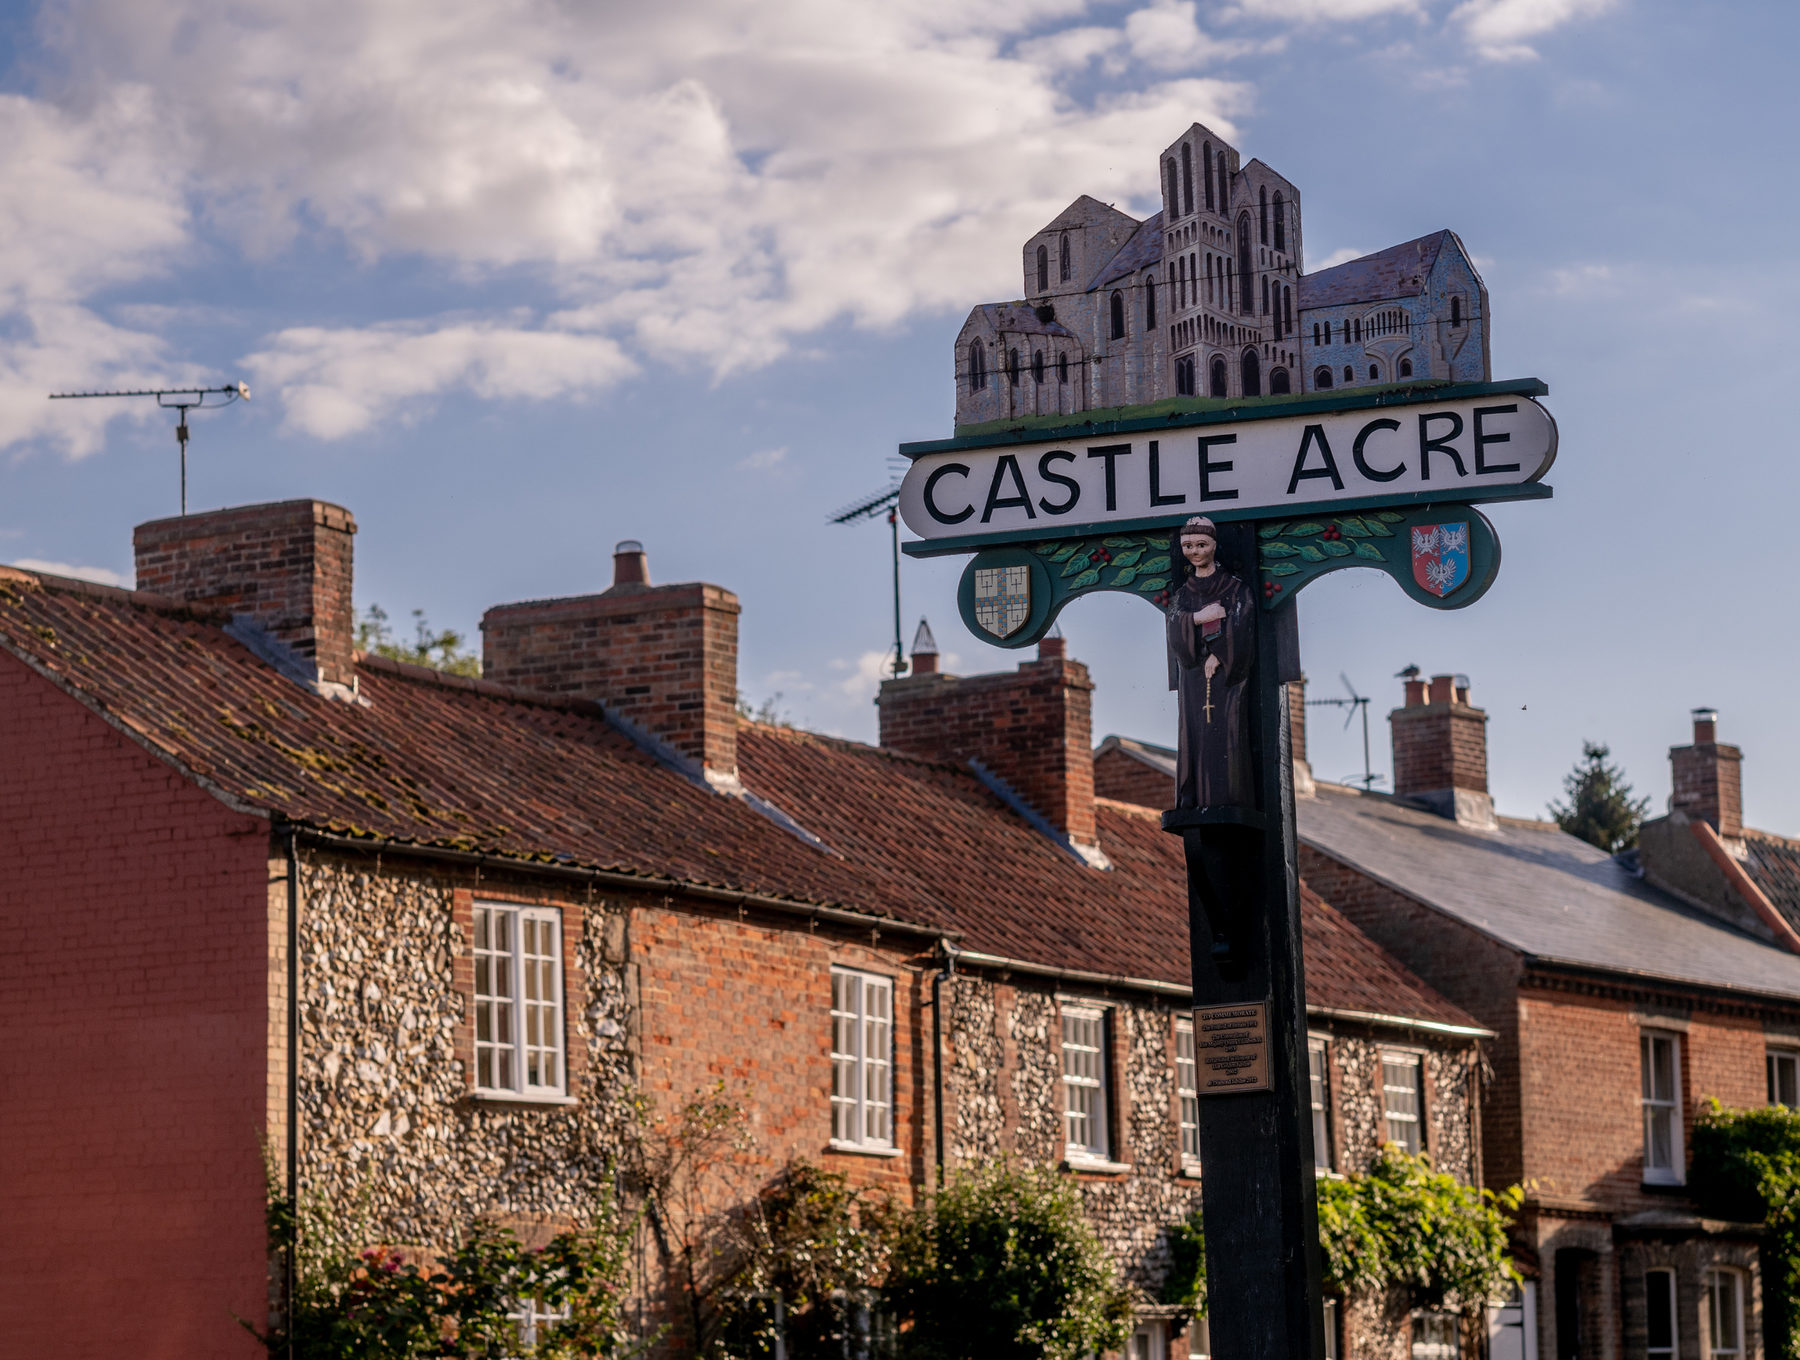 016 Castle Acre Village 2018